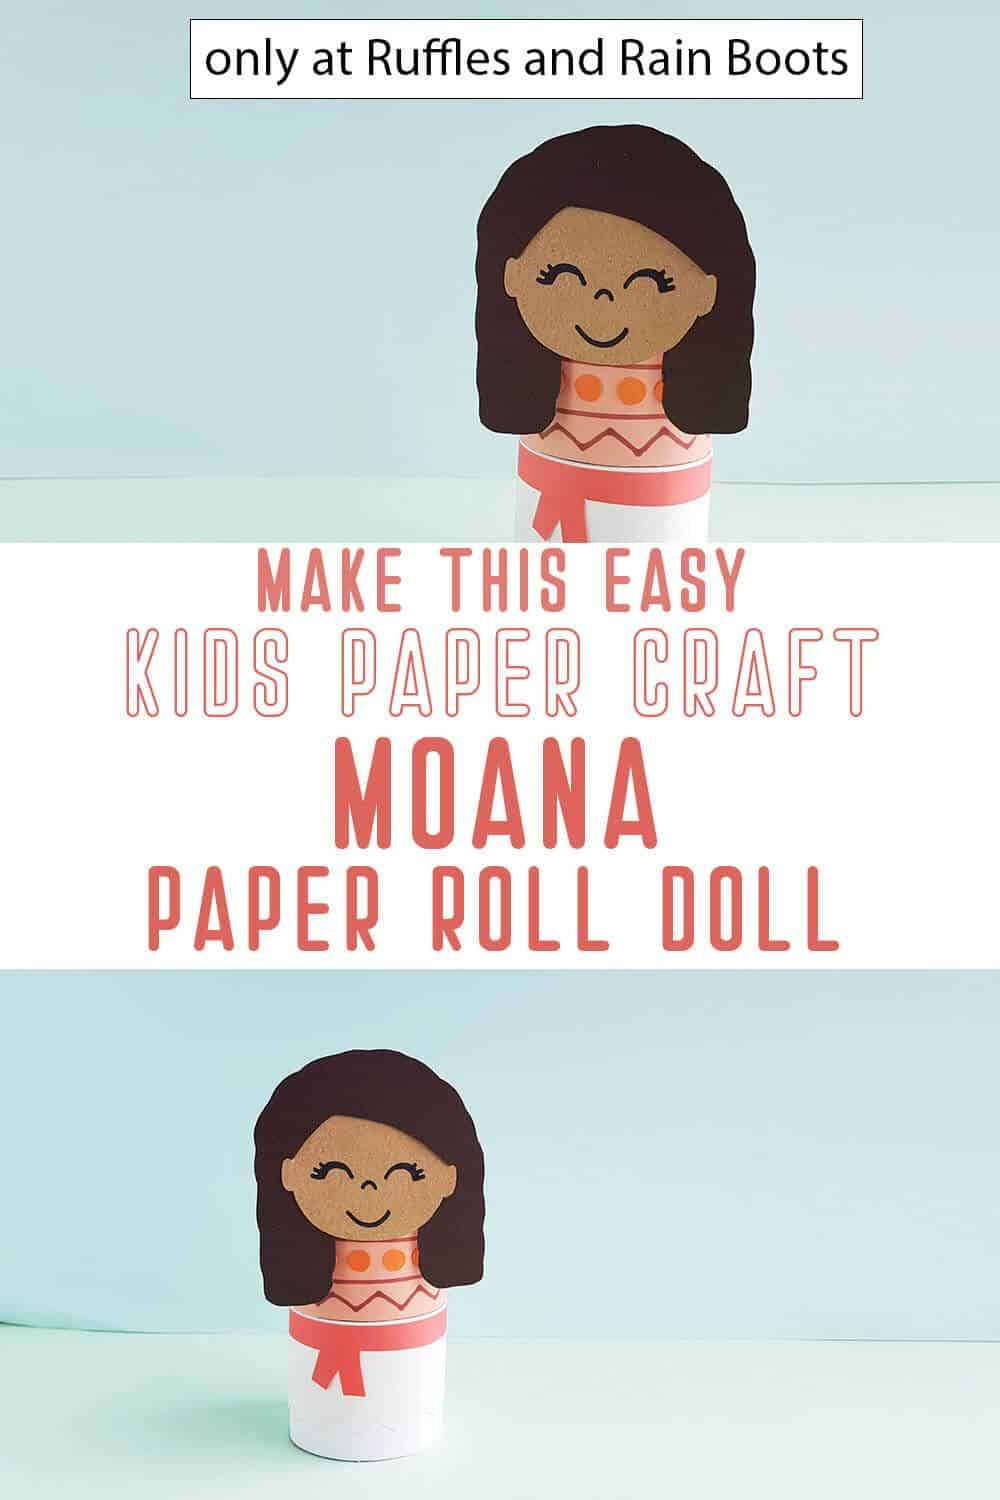 photo collage of moana paper doll disney paper craft for kids with text which reads make this easy kids paper craft moana paper roll doll